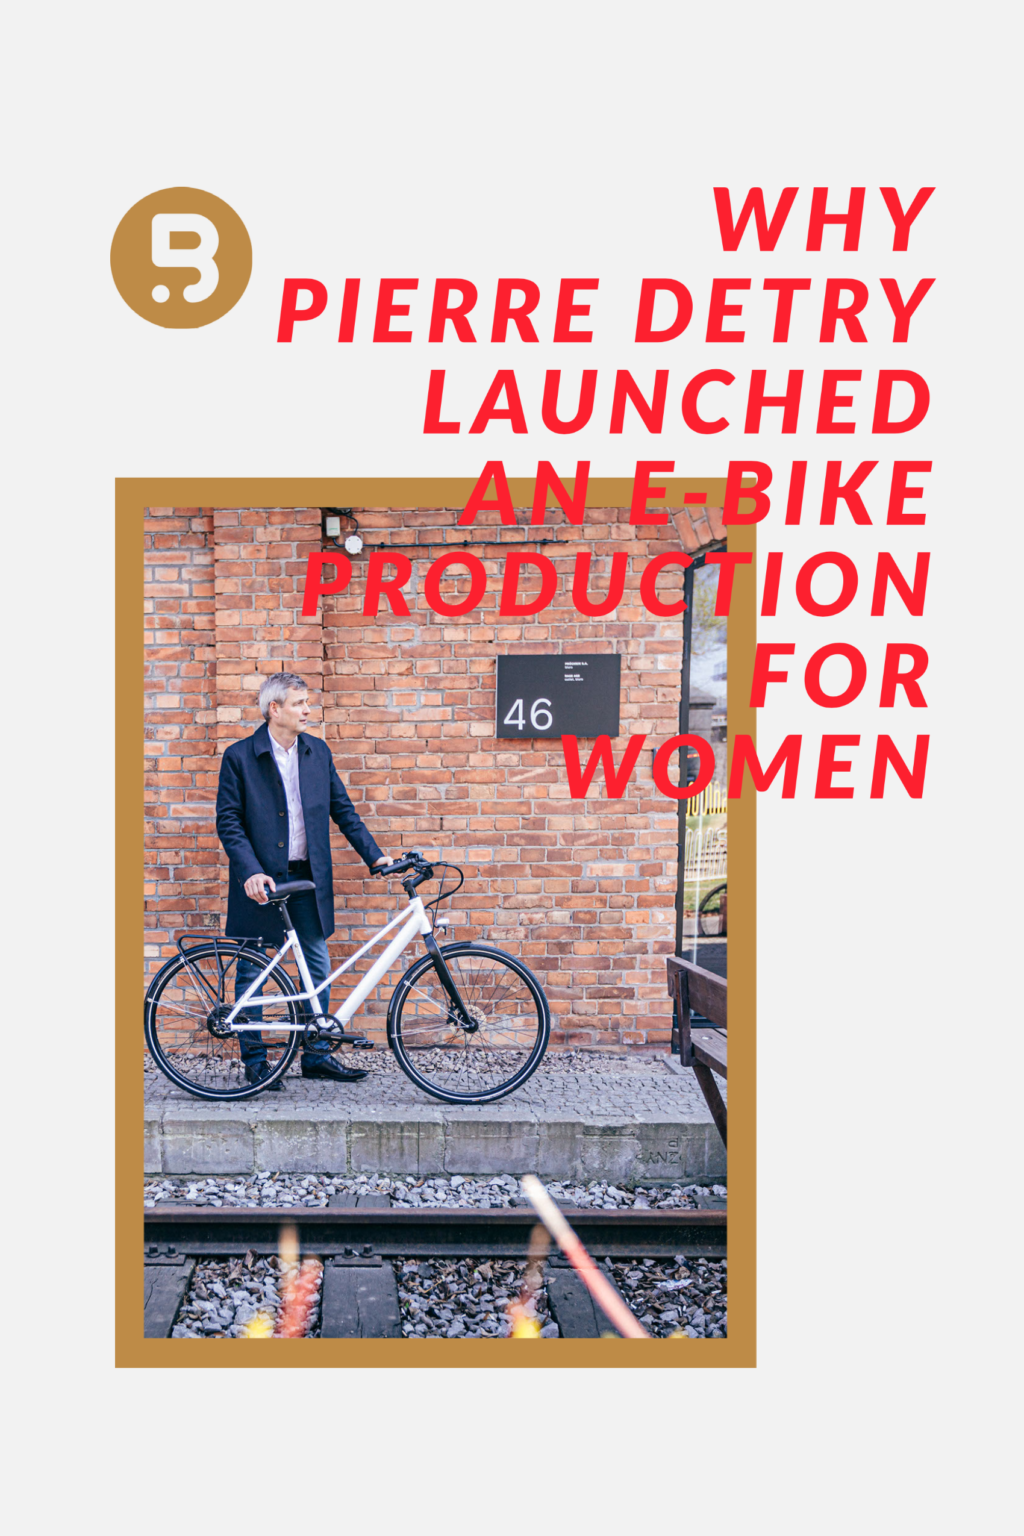 From GM of a big corporation to entrepreneur: Why Pierre Detry decided to launch an e-bike production for women?